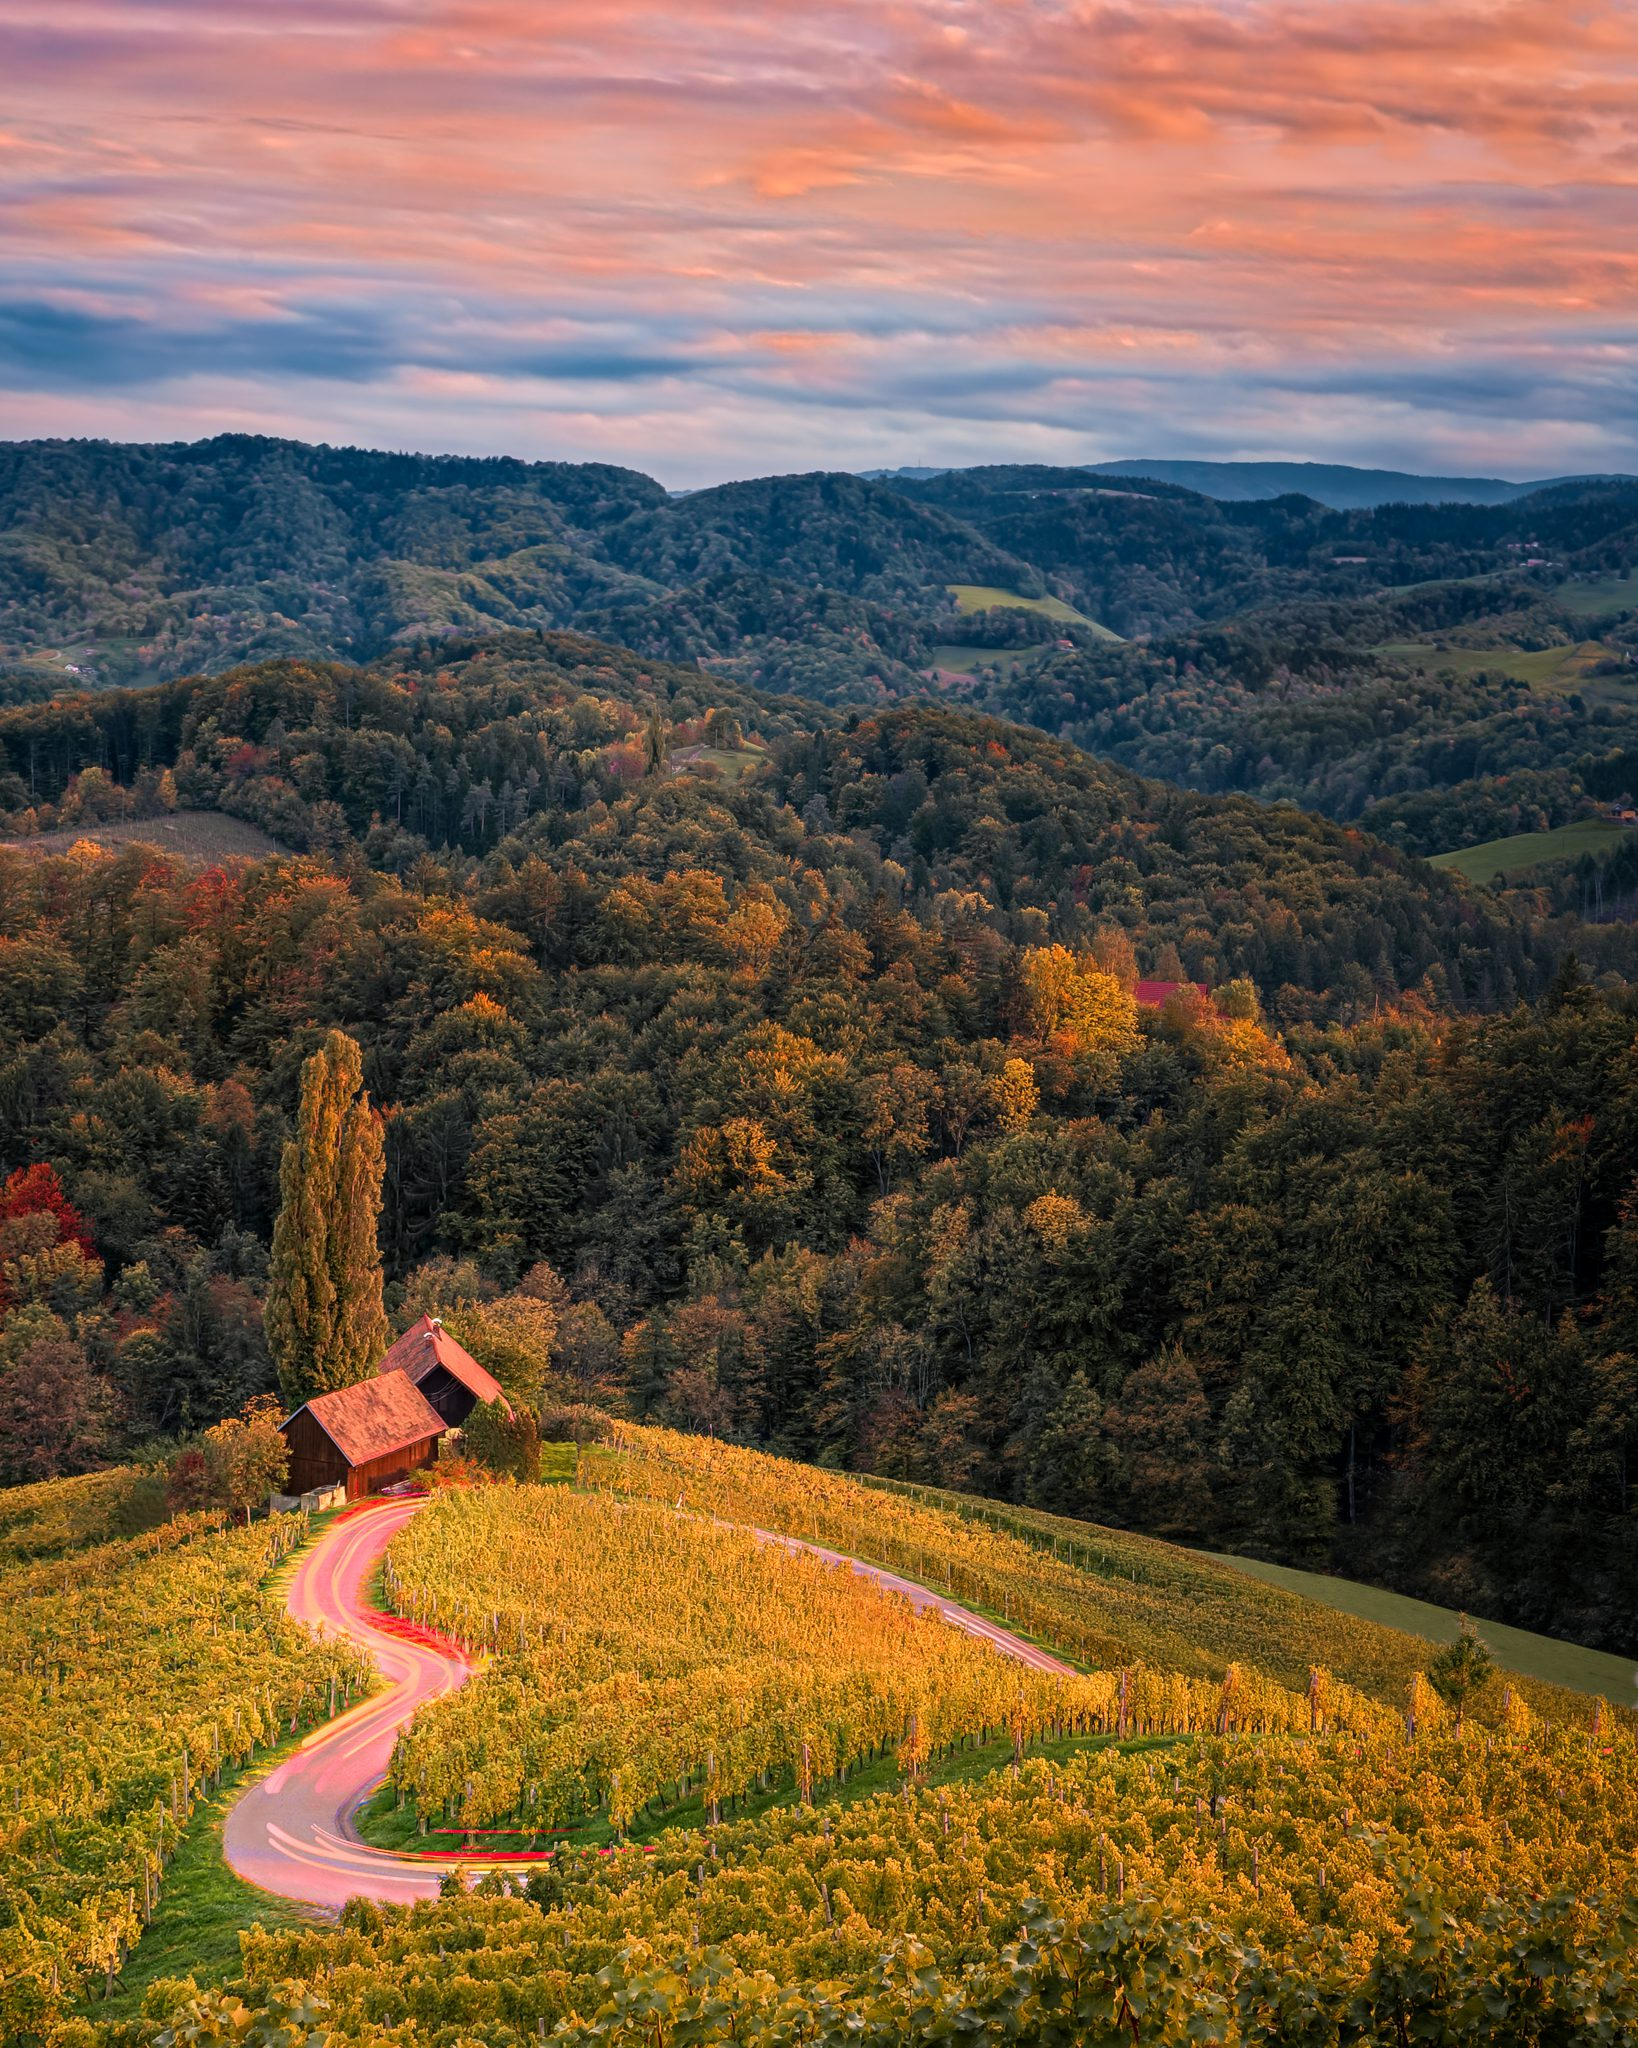 Although I love to travel I am also happy when I return home to Slovenia. As you can see, a lovely heart is weaved into our land...The photo was made on a wonderful Dreisiebner vineyard in Zgornja Kungota. If you are ever in the vicinity, I highly recommend you to take the time and meet with friendly owners.